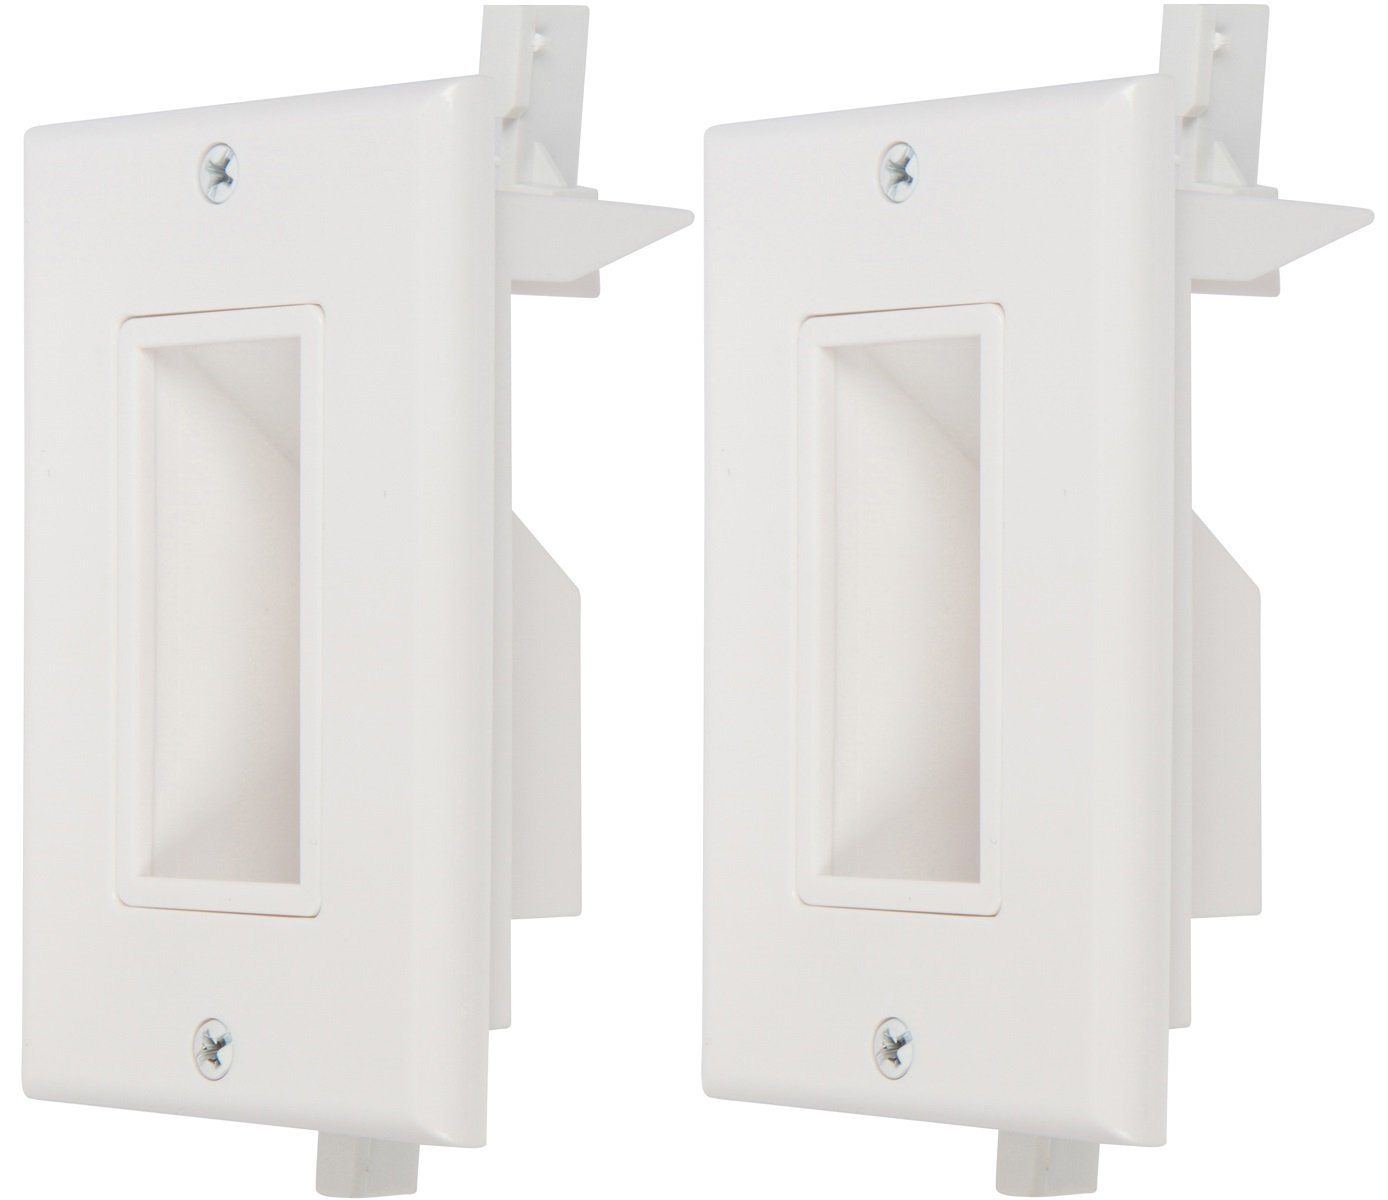 Buy Recessed Low Voltage Cable Wall Plates With Bottom Openings Poin Ethernet Jack Wiring Clean Install